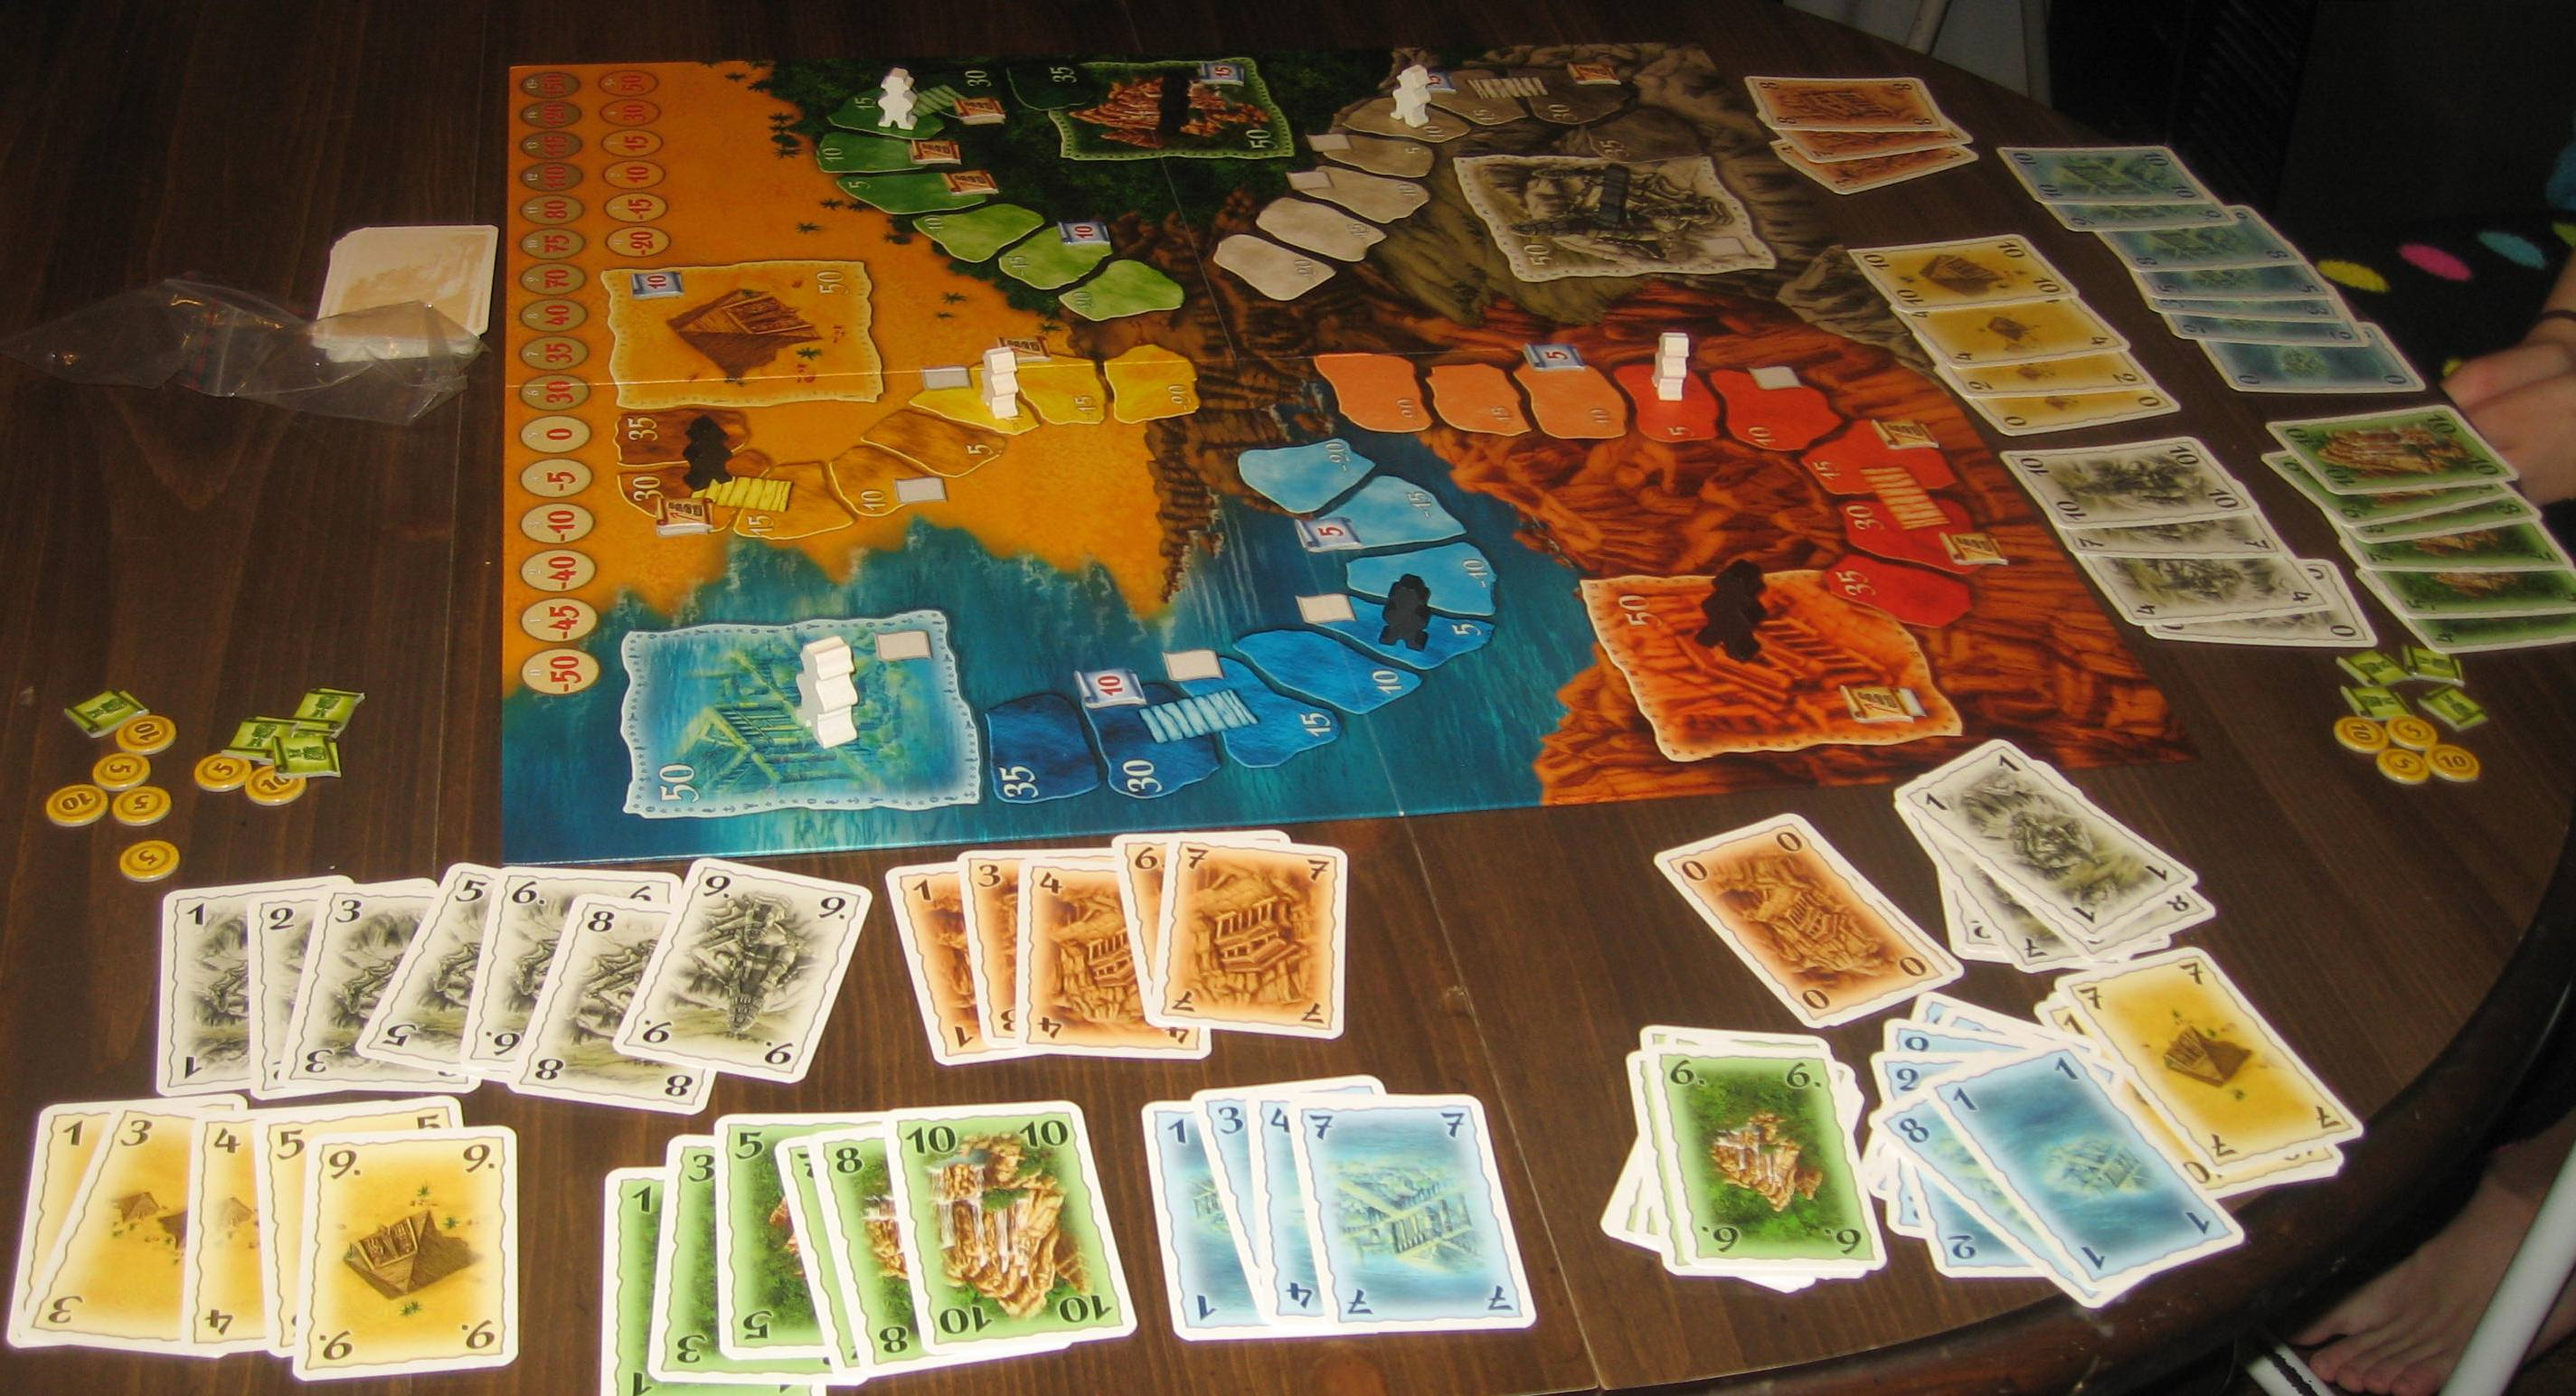 Playing tabletop games - Lost Cities Board Game 2 5 Players Ages 10 Average Playing